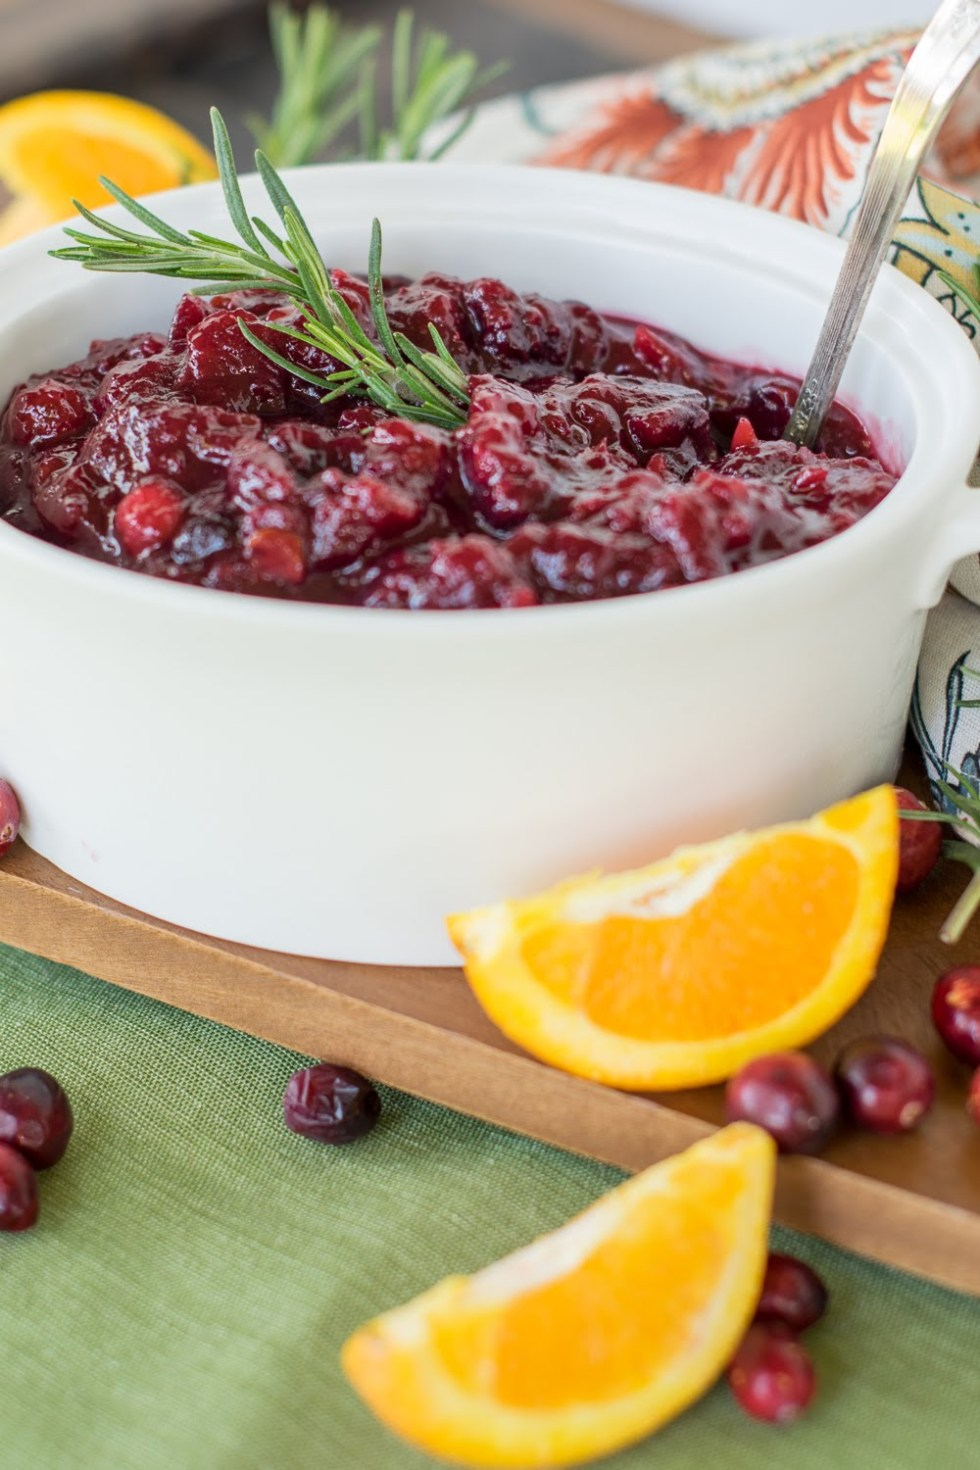 Make Ahead Cranberry Sauce